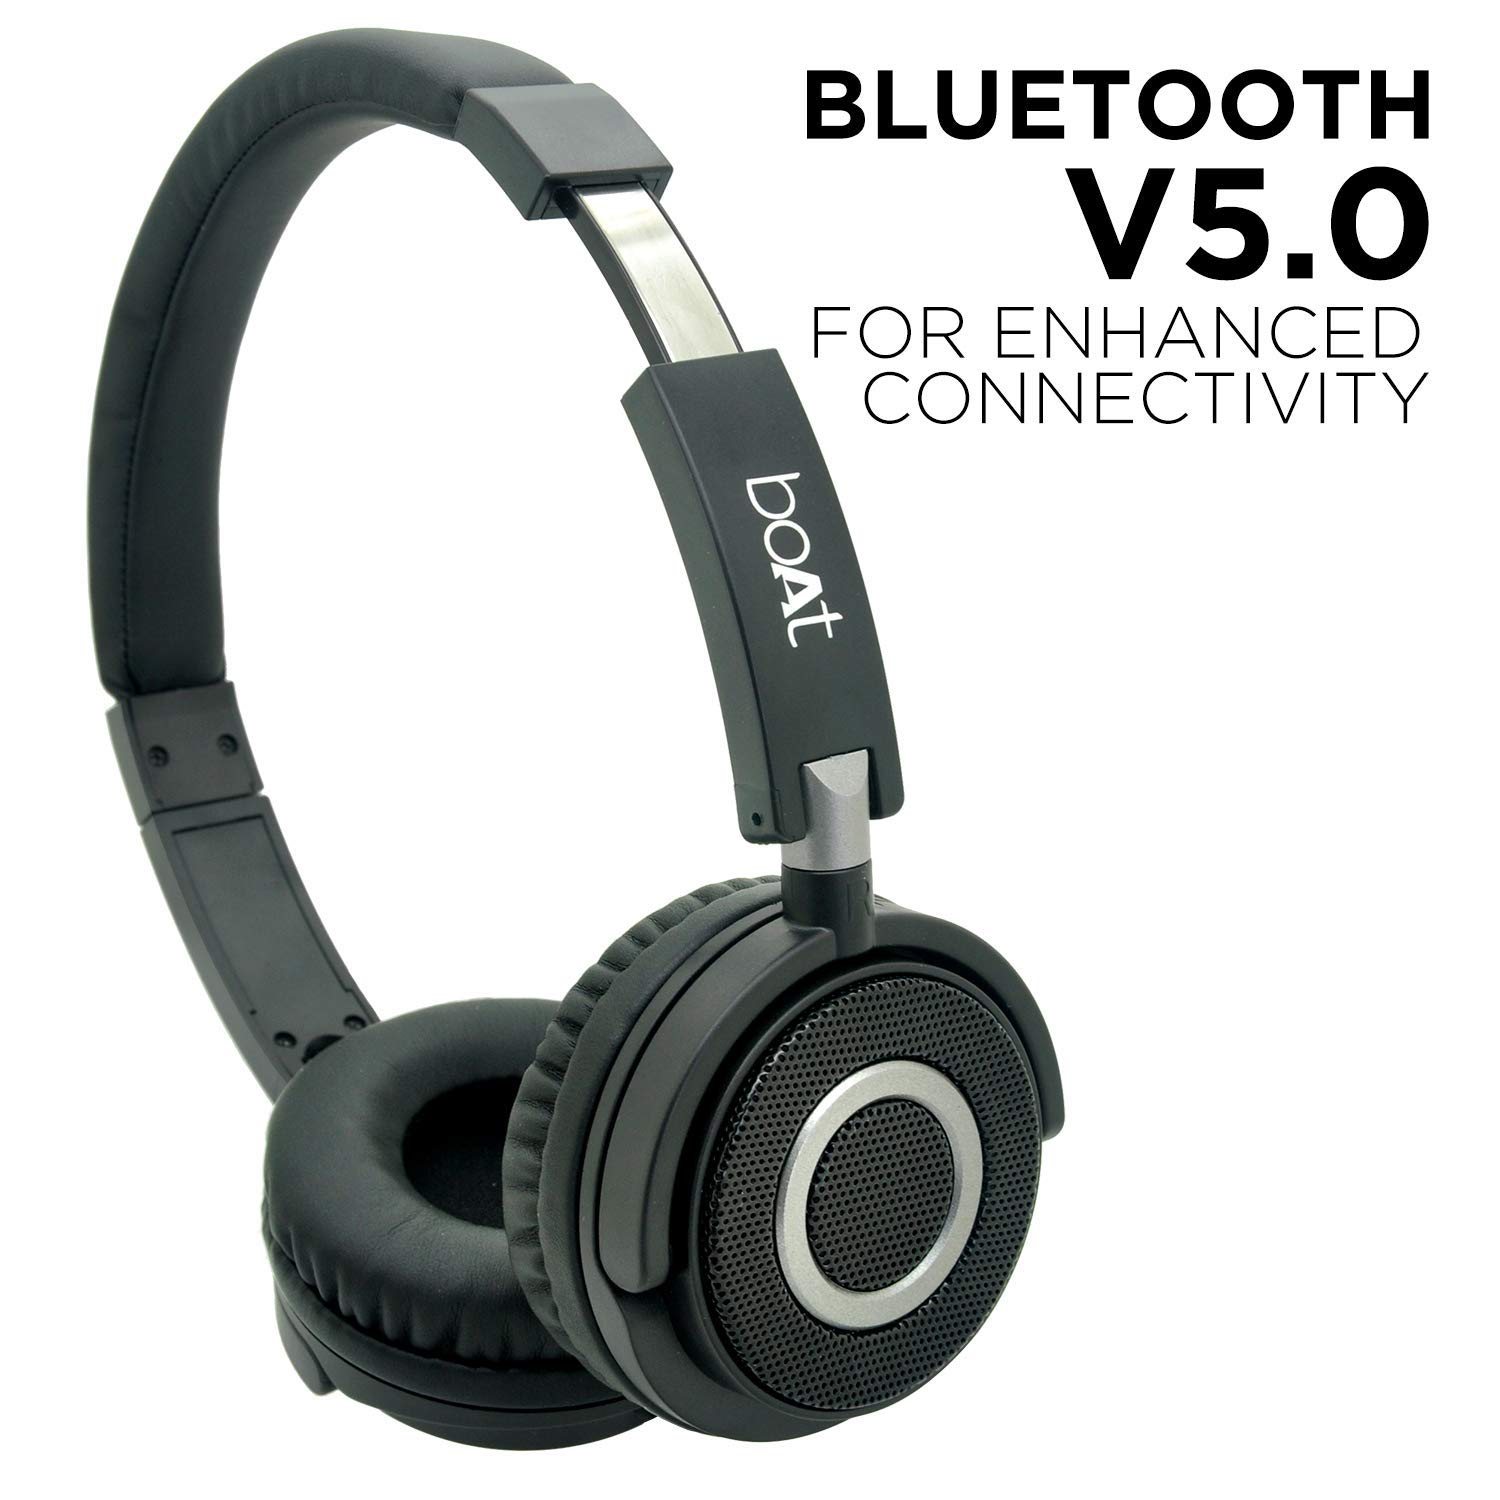 Boat 900 Wireless V2 On Ear Headphone With Bluetooth Amazon In Electronics